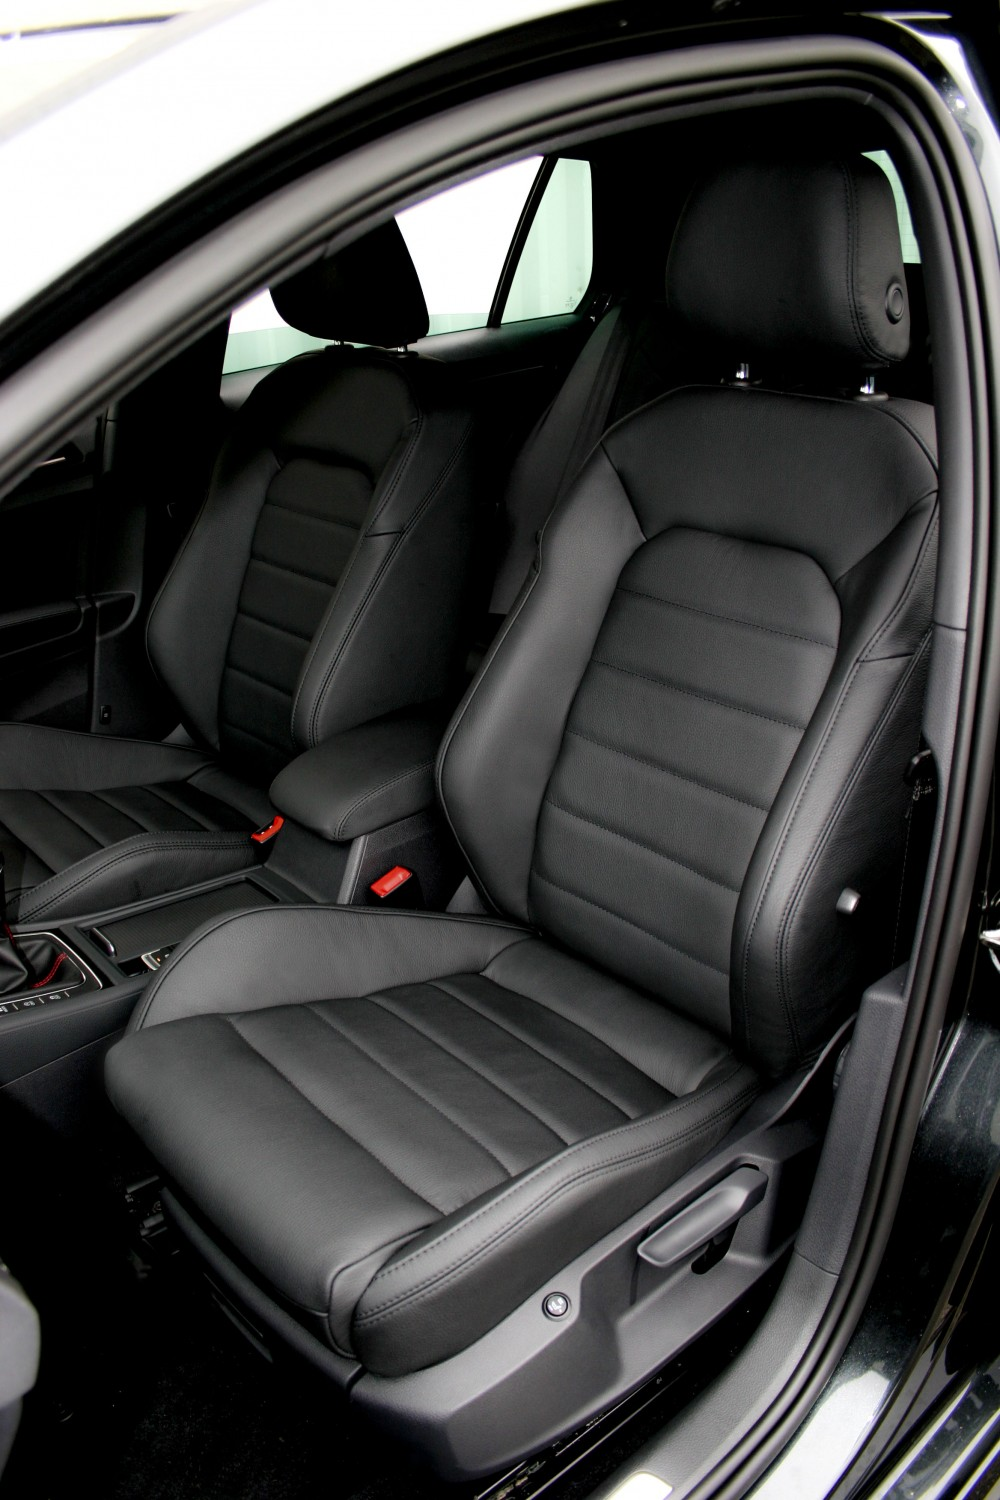 Volkswagen Golf Leather Seats | Automotive Leather Specialists ...